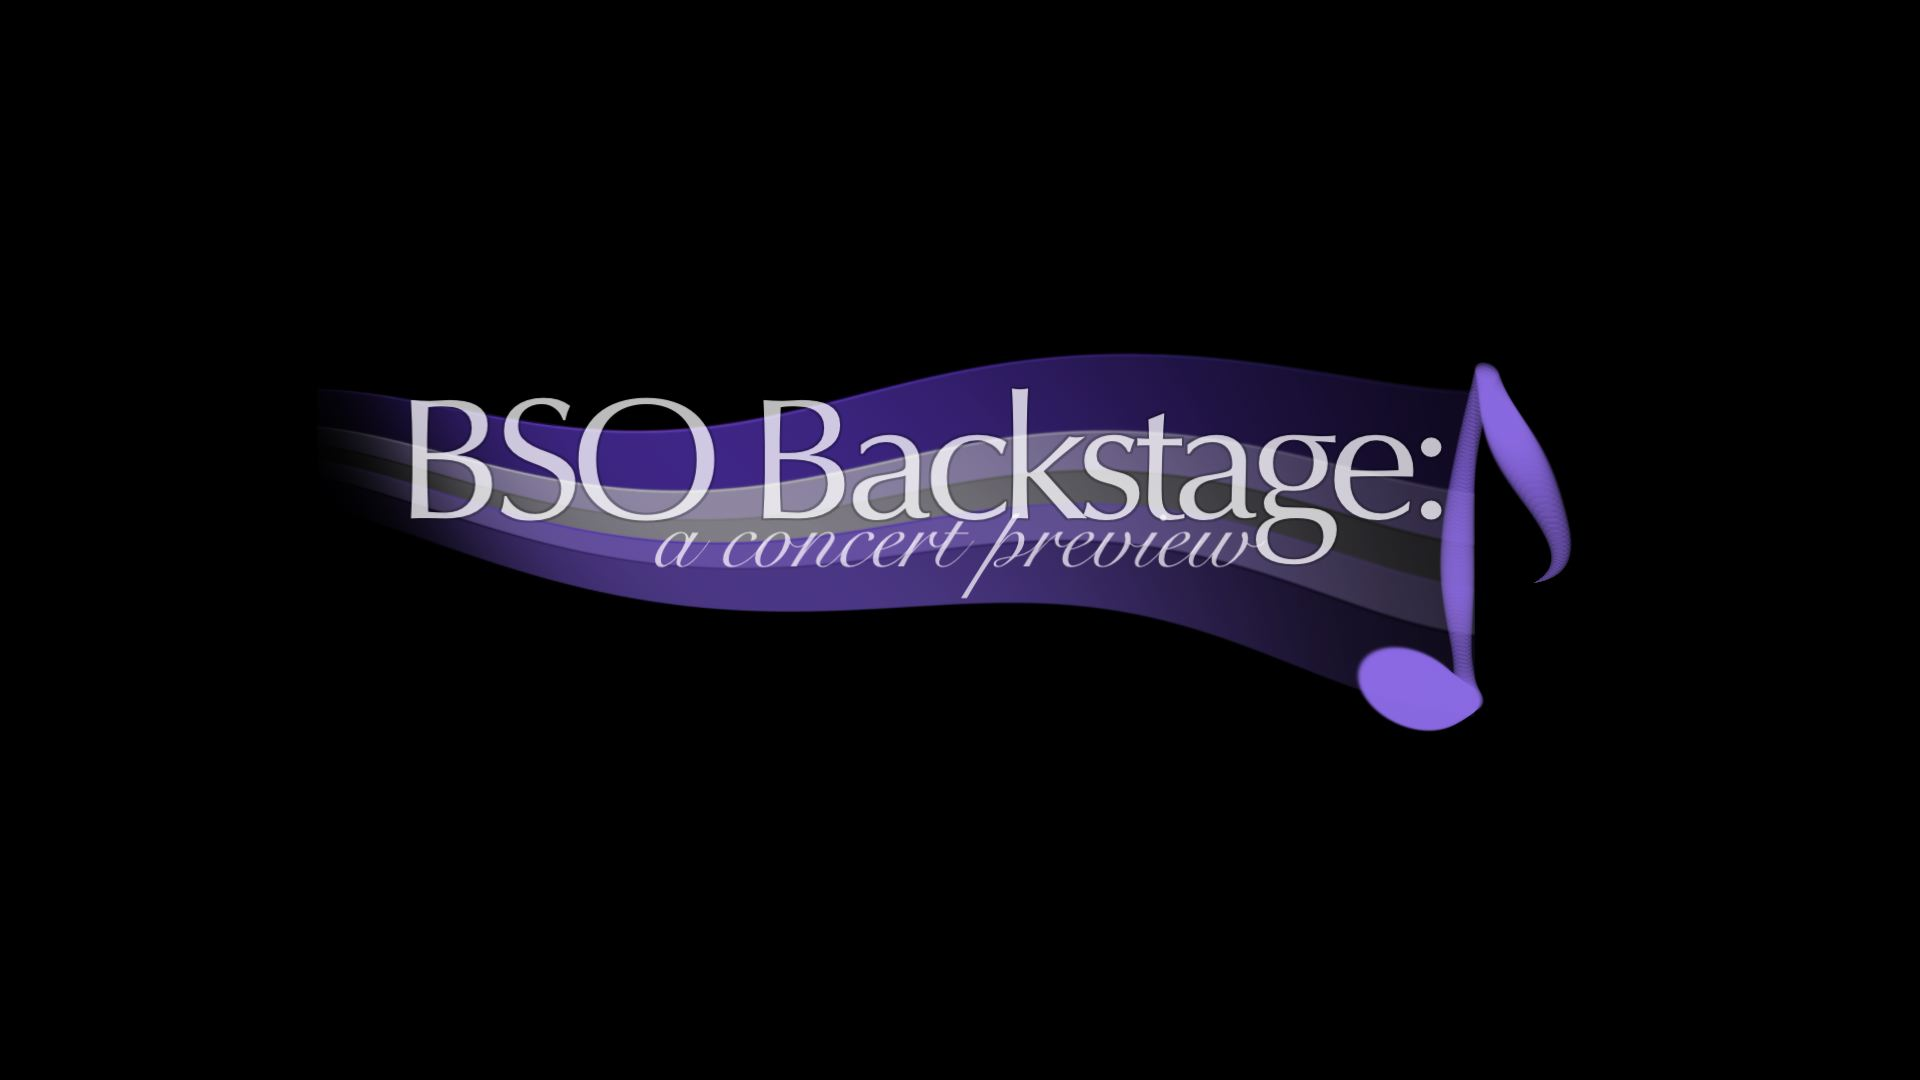 BSO Backstage: A Concert Preview